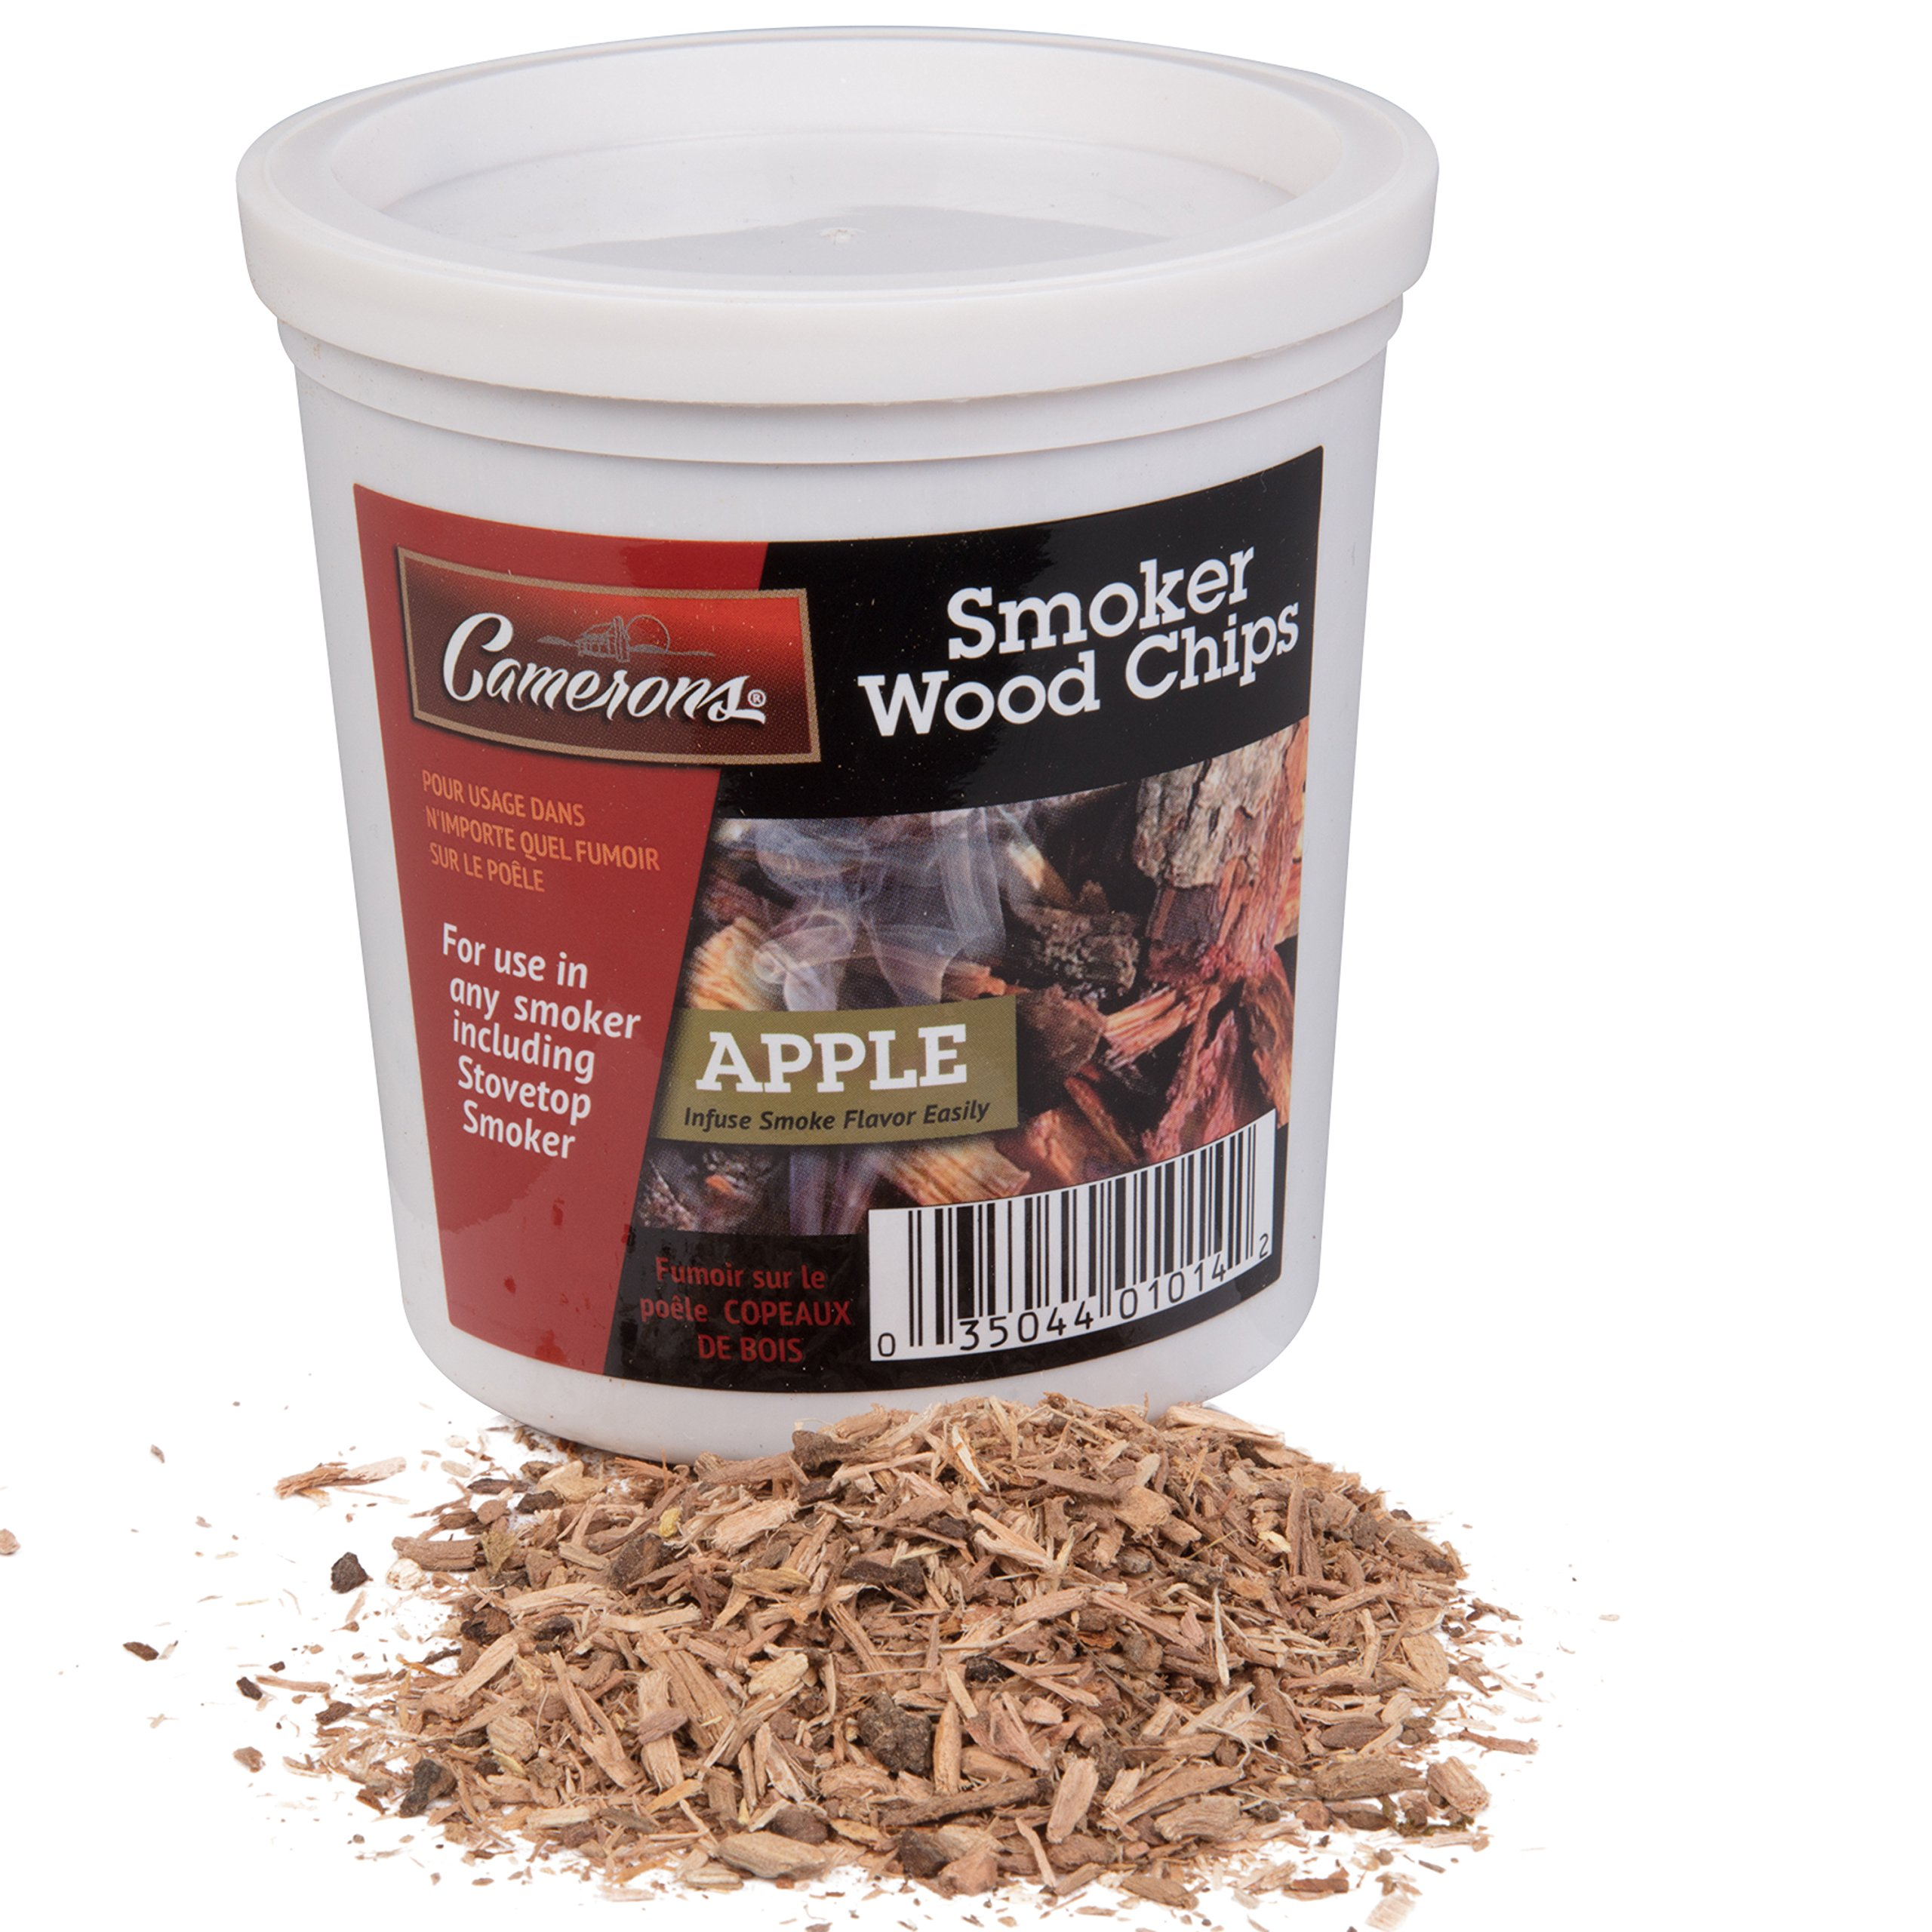 Camerons Smoker Wood Shavings - 1-pint Apple